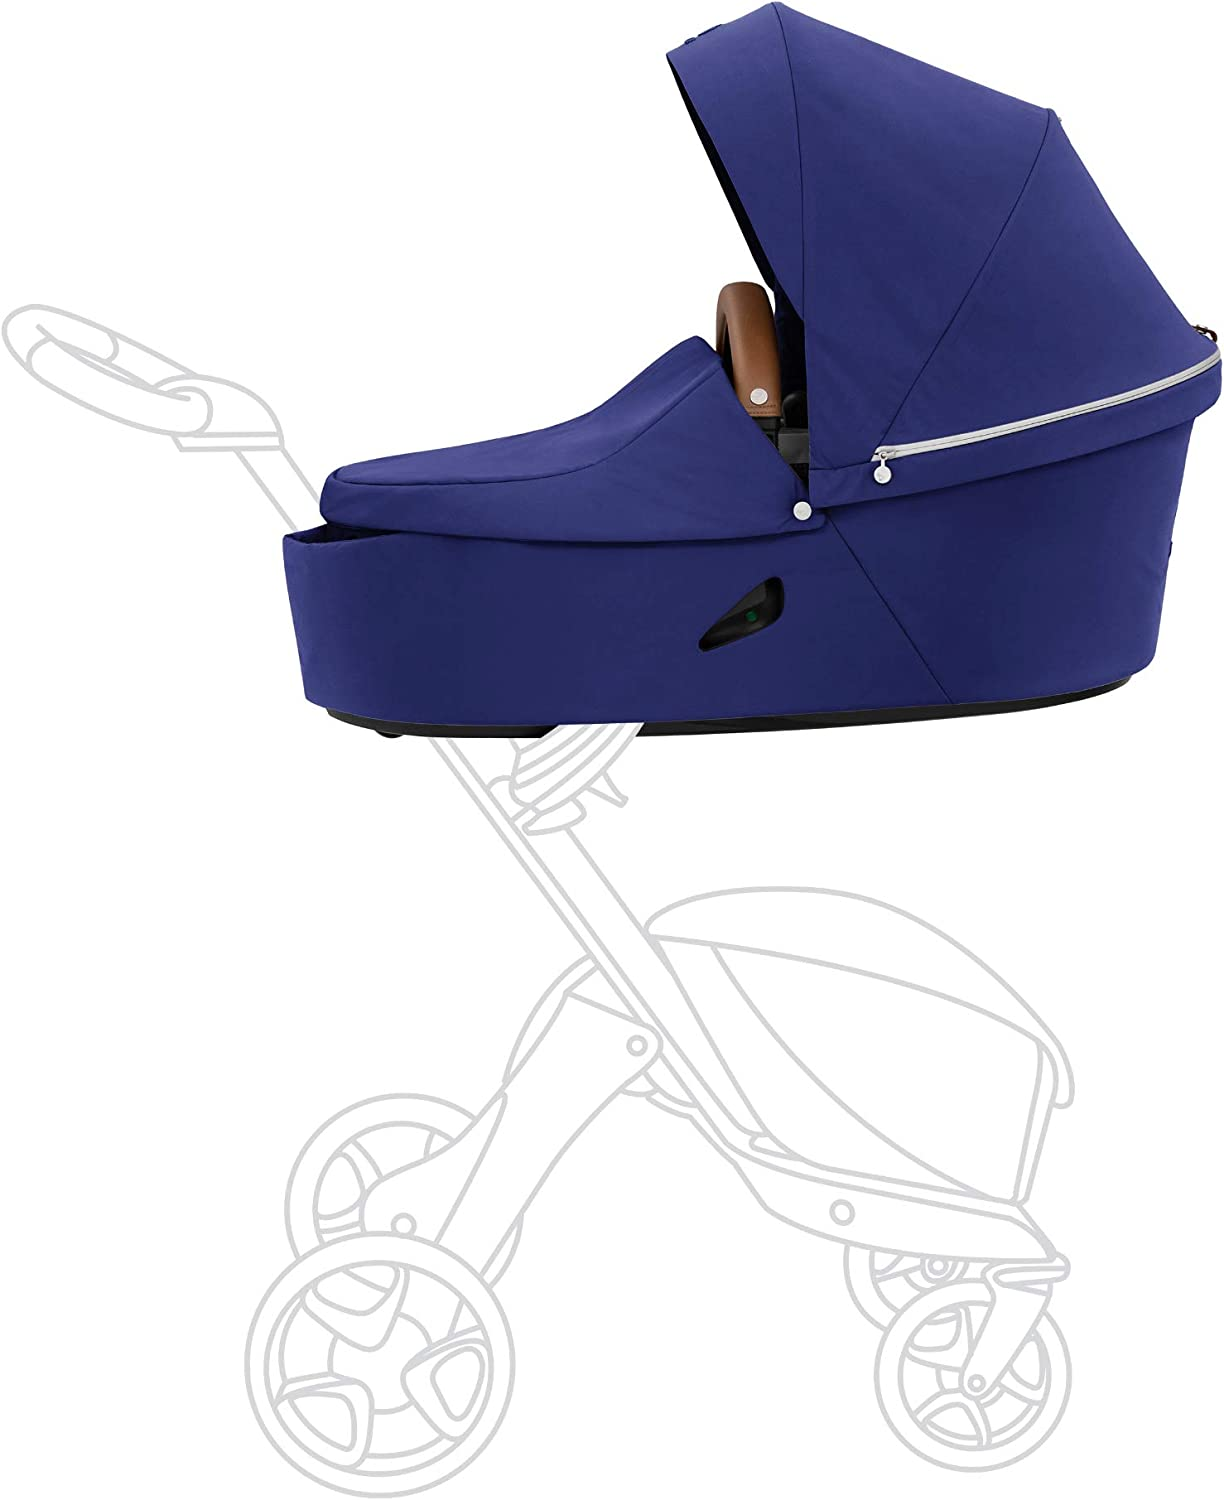 Stokke Xplory X Carry Cot, Royal Blue - Detachable Cot for Xplory X Stroller - Soft Interior Lining & Breathable Mattress - with Extended Canopy, Removable Wind Cover & Two Easy-Access Pockets